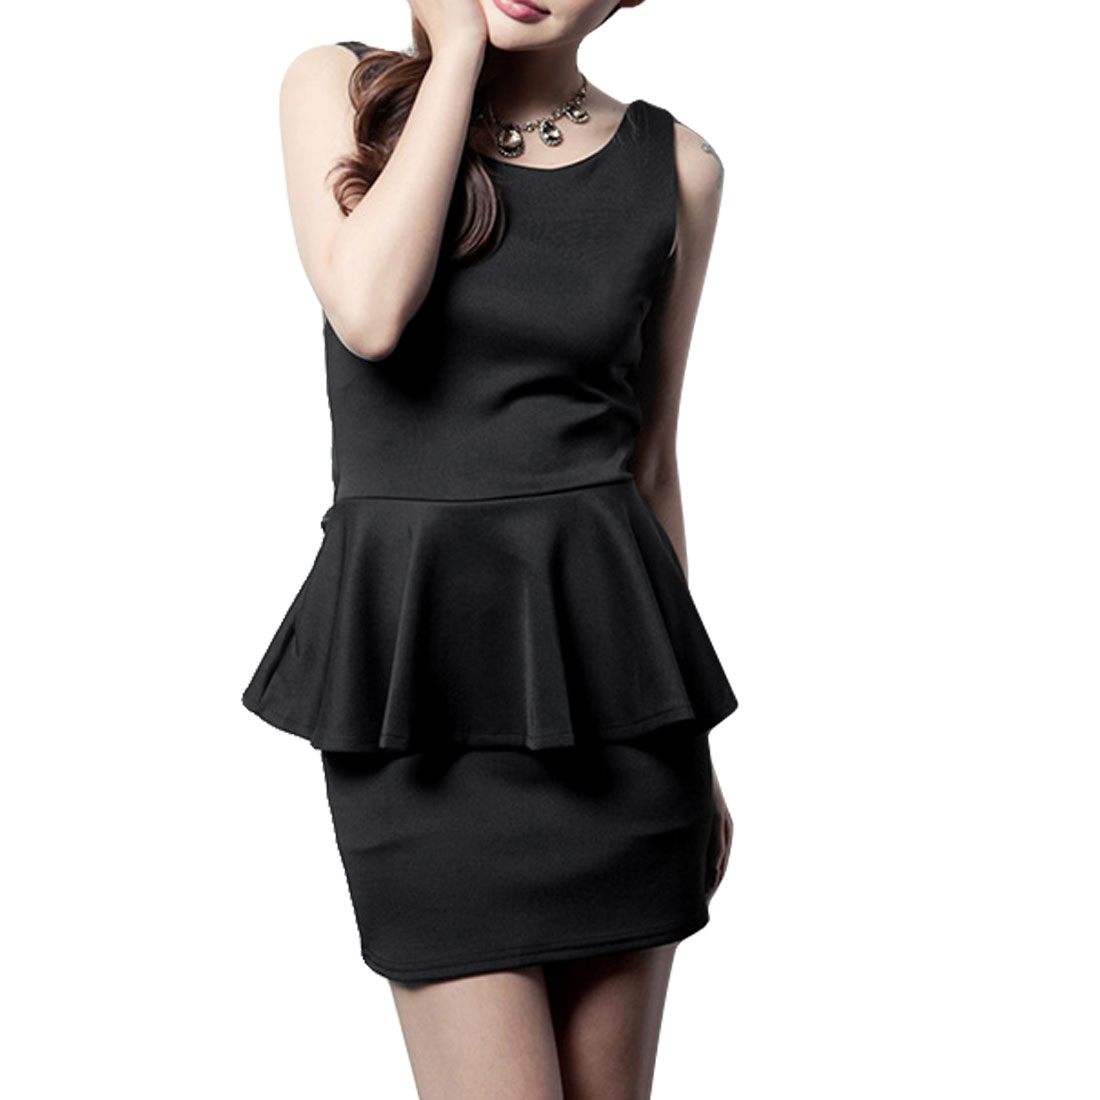 Sleeveless Round Neck Backless Mini Peplum Dress Black XS for Ladies